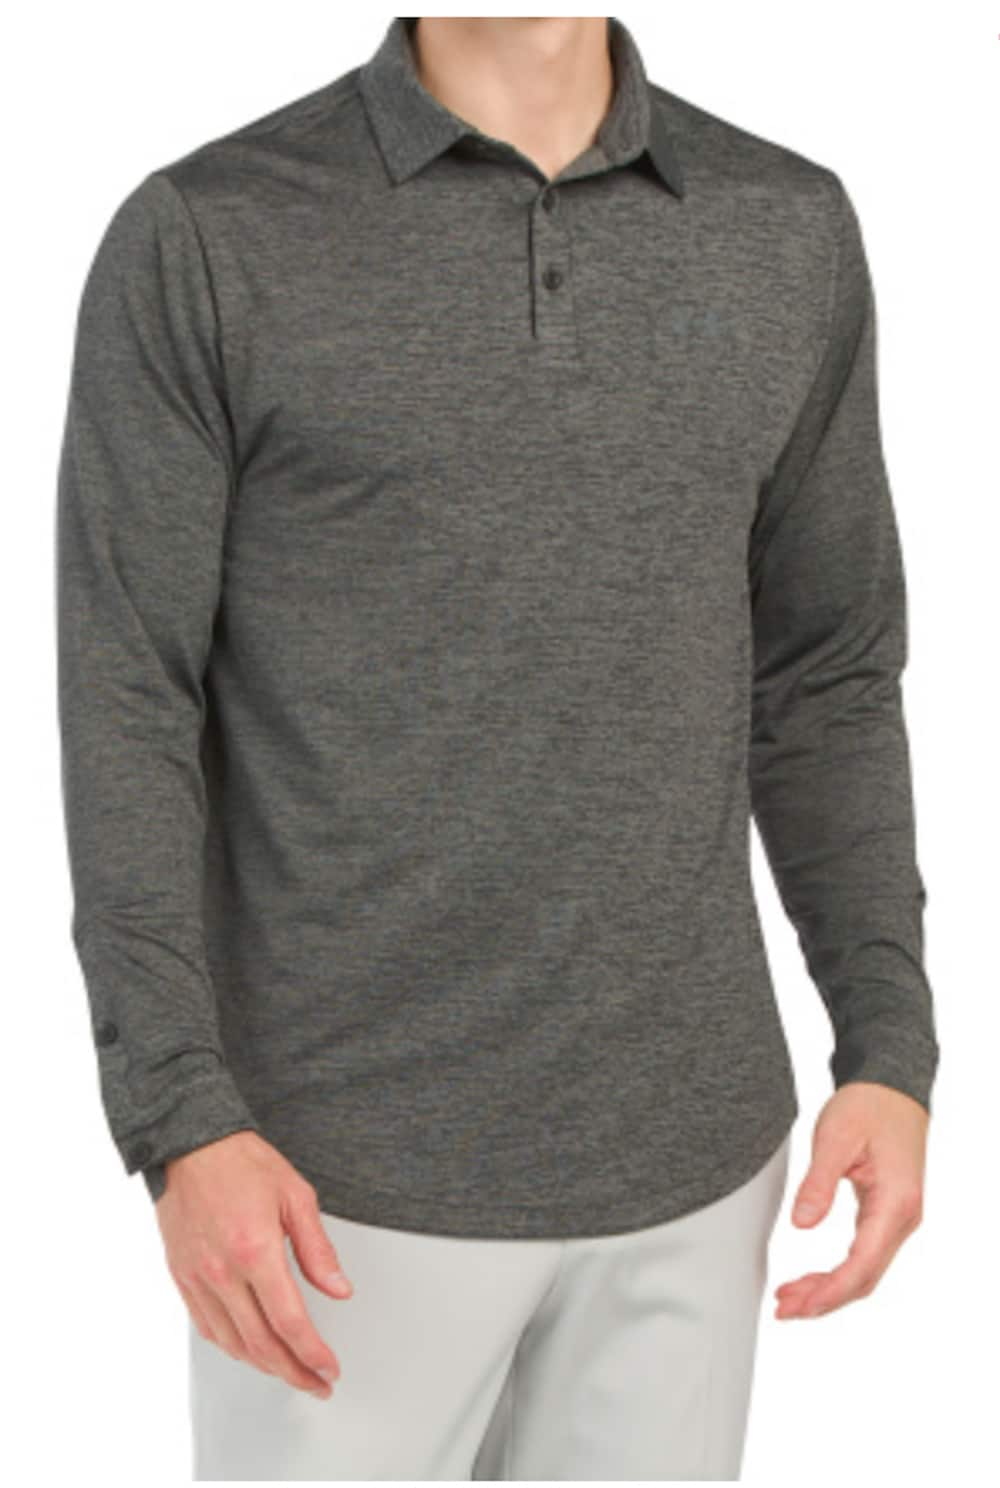 Under Armour Men's Long Sleeve Playoff 2.0 Golf Polo (Black) $22 + FS